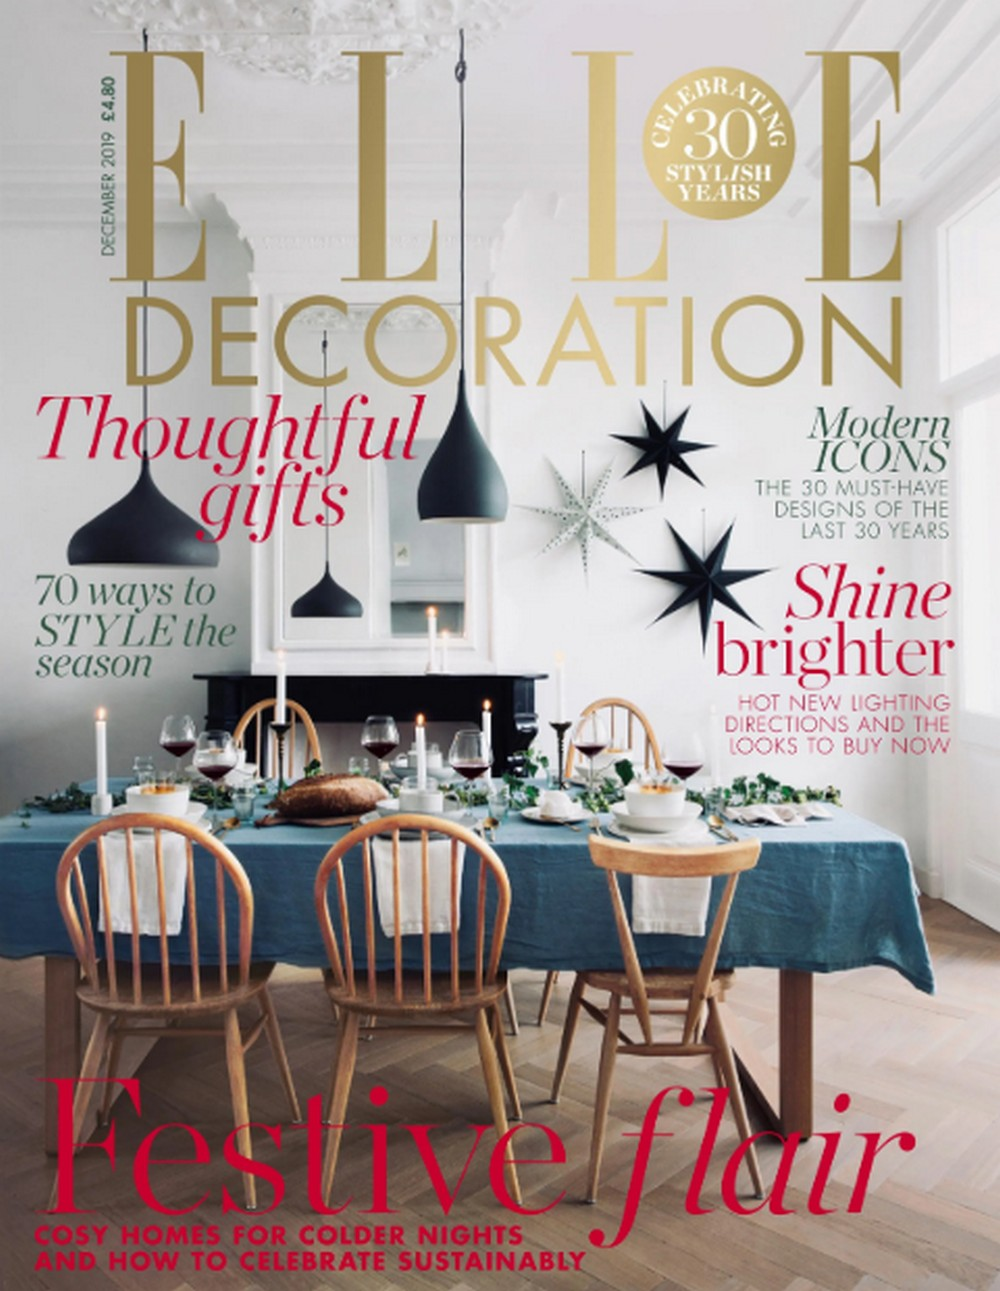 End Up The Year With These 7 Inspiring Interior Design Magazines! interior design magazines End Up The Year With These 7 Inspiring Interior Design Magazines! End Up The Year With These 7 Inspiring Interior Design Magazines